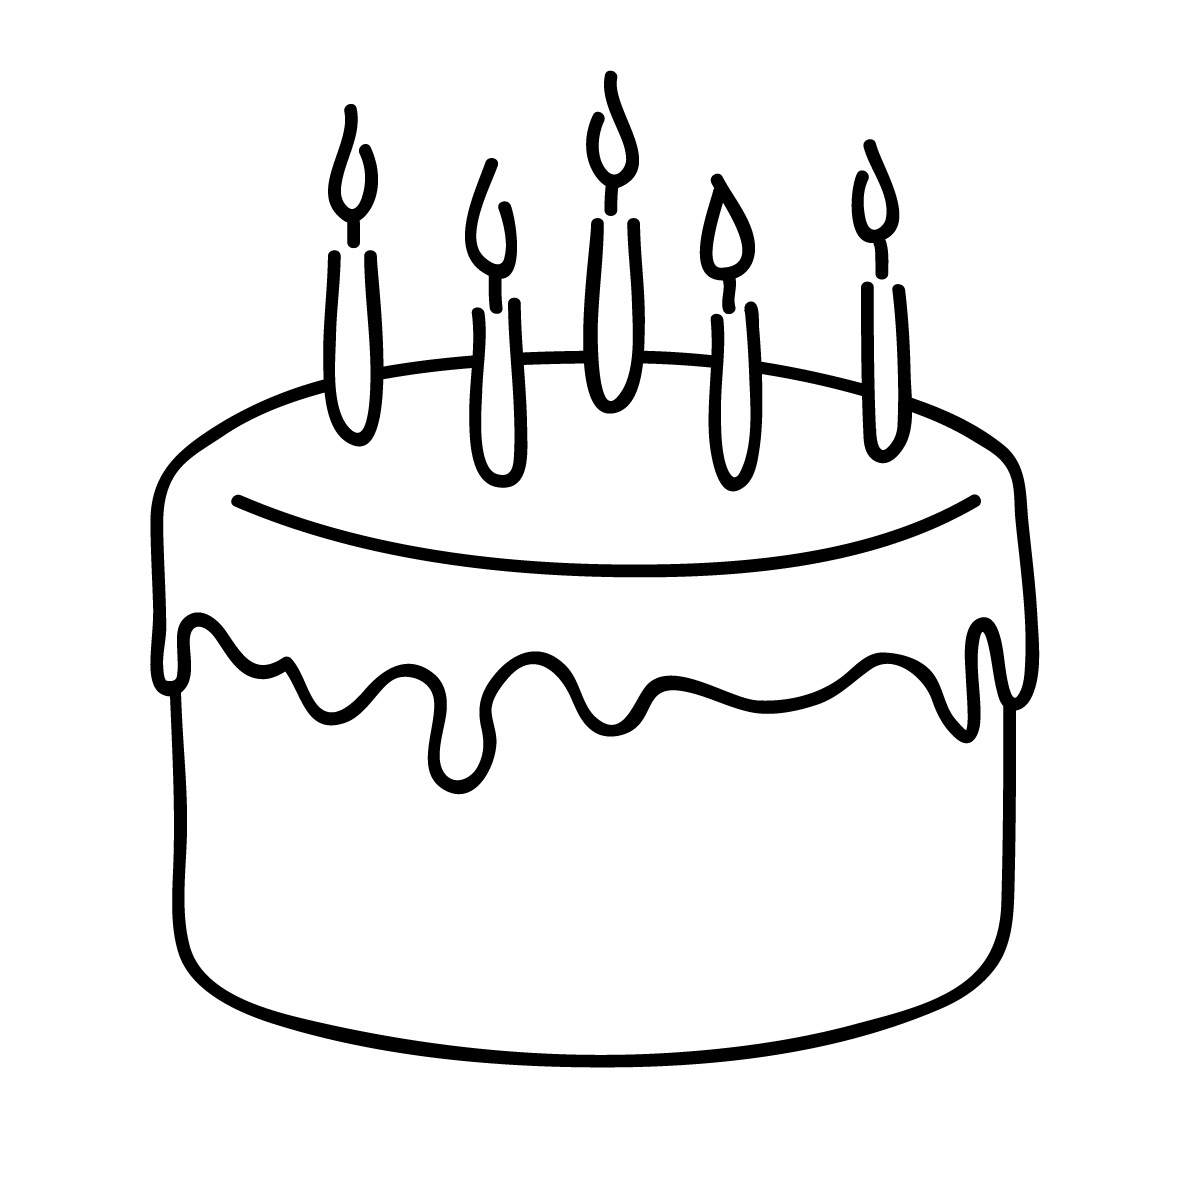 piece of cake coloring page cake coloring pages piece 2020 check more at https piece page coloring of cake